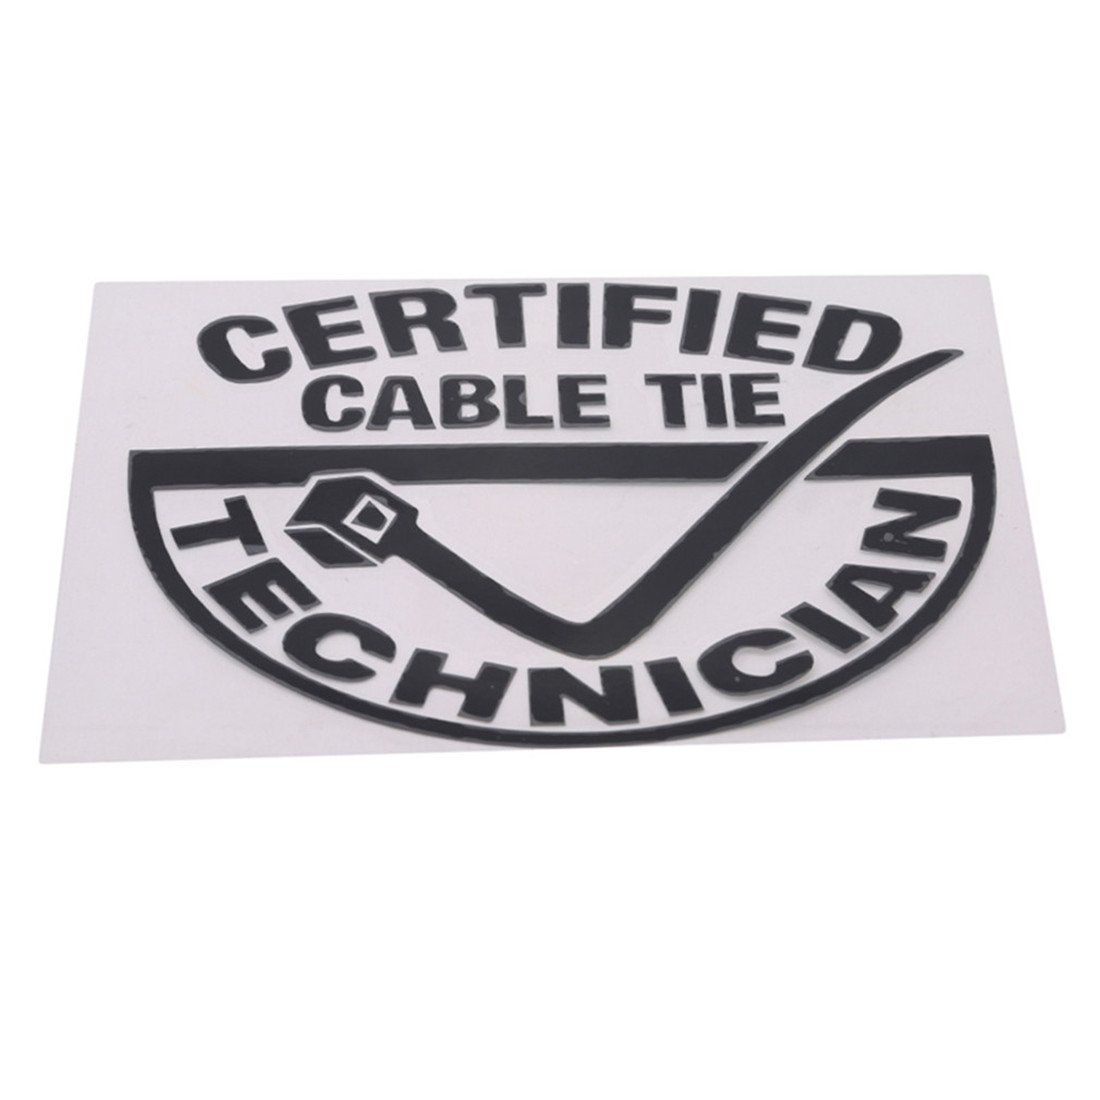 CERTIFIED CABLE TIE TECHNICIAN Decal Vinyl Car Window Sticker ANY SIZE Auto Parts and Vehicles